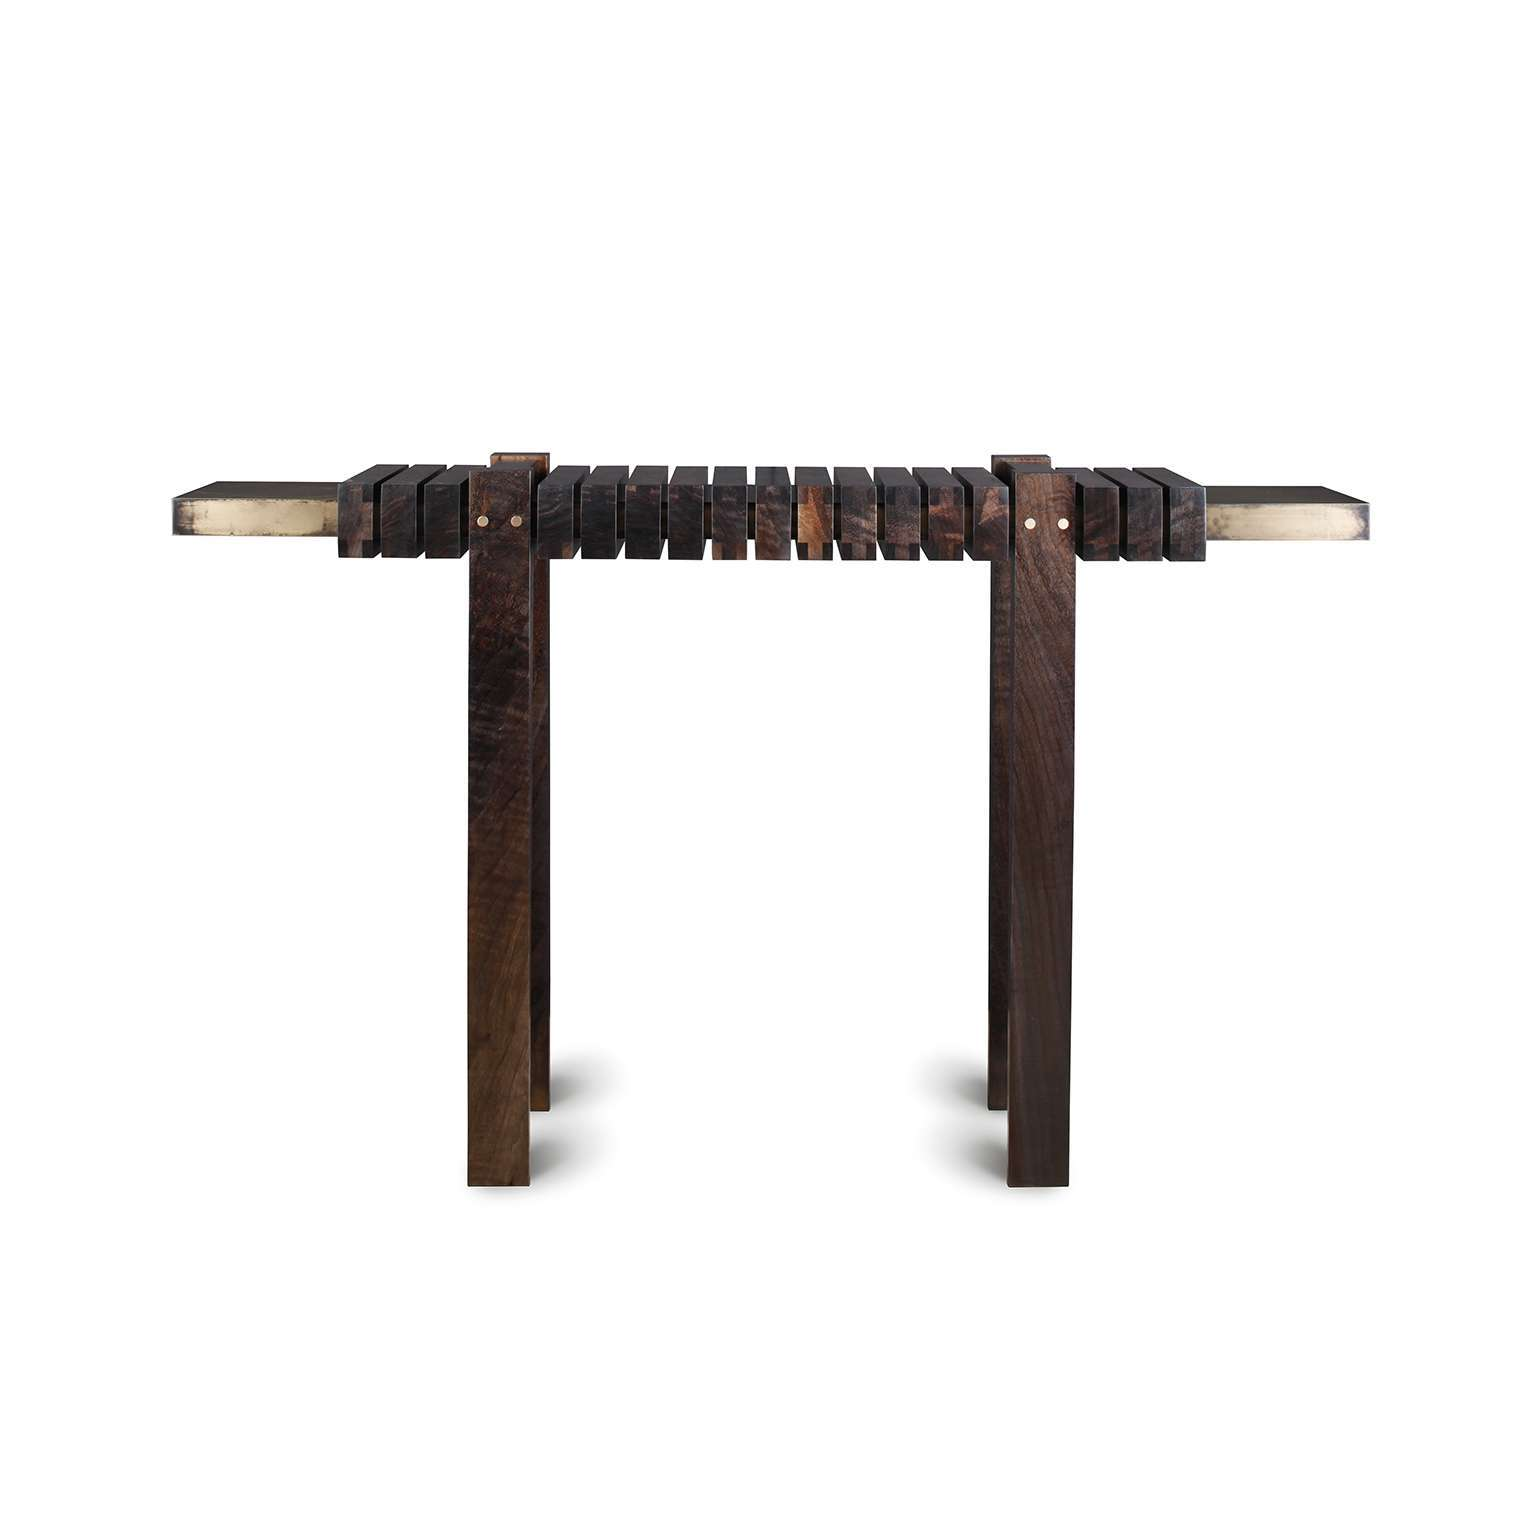 ""\""""The Bridge"""" Console Table in Smoked Walnut and Etched Bronze by Studio Roeper""1536|1536|?|en|2|ba0449988e10425f7be5d6d07918cee0|False|UNLIKELY|0.32306820154190063